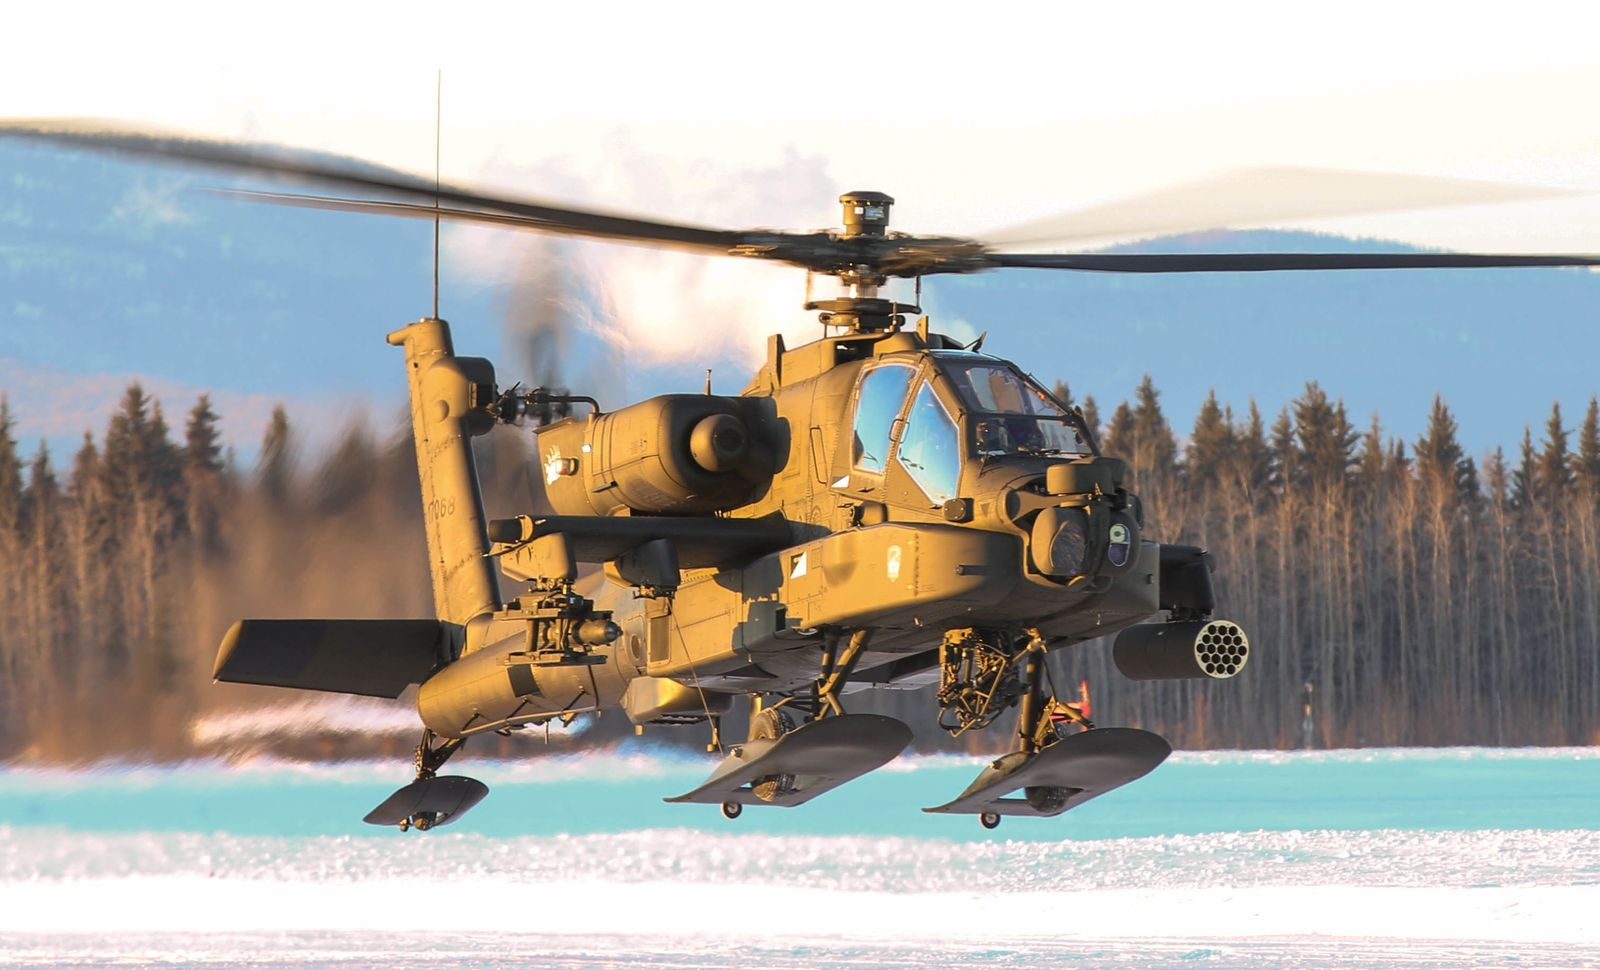 Here Come New Helicopters That Could Be the Future of the Army